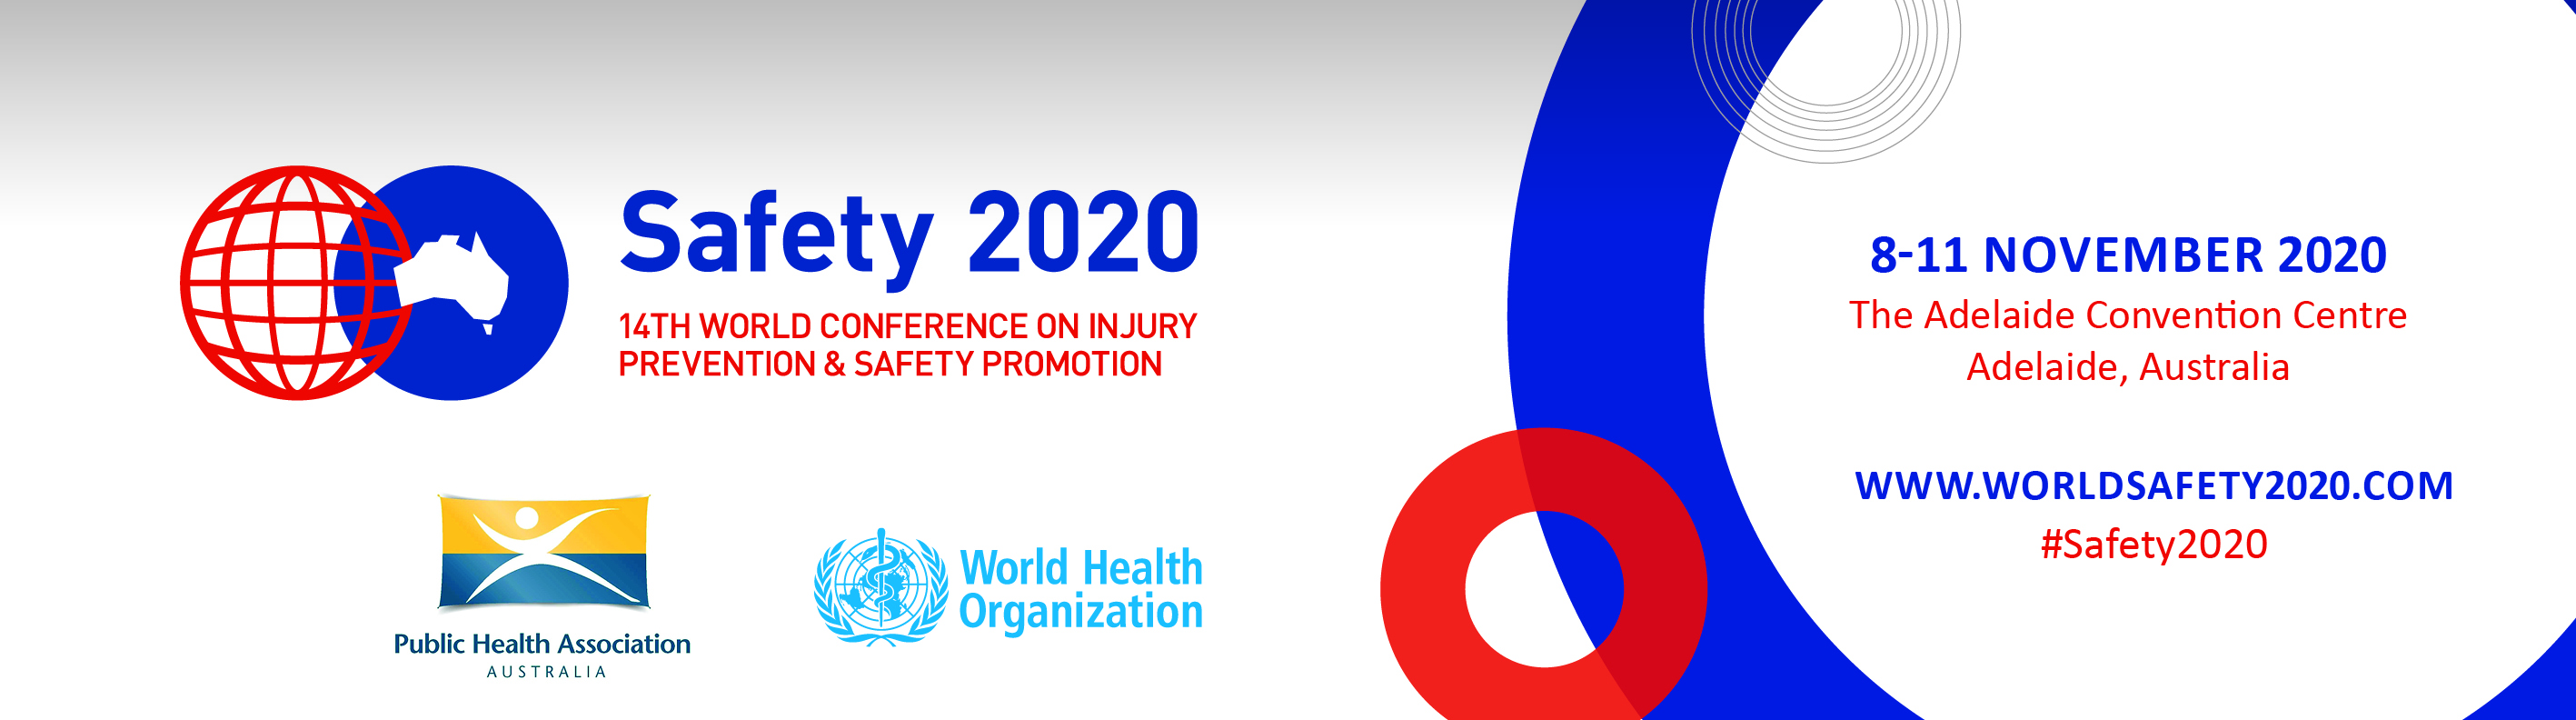 Safety 2020 - Events - Public Health Association of